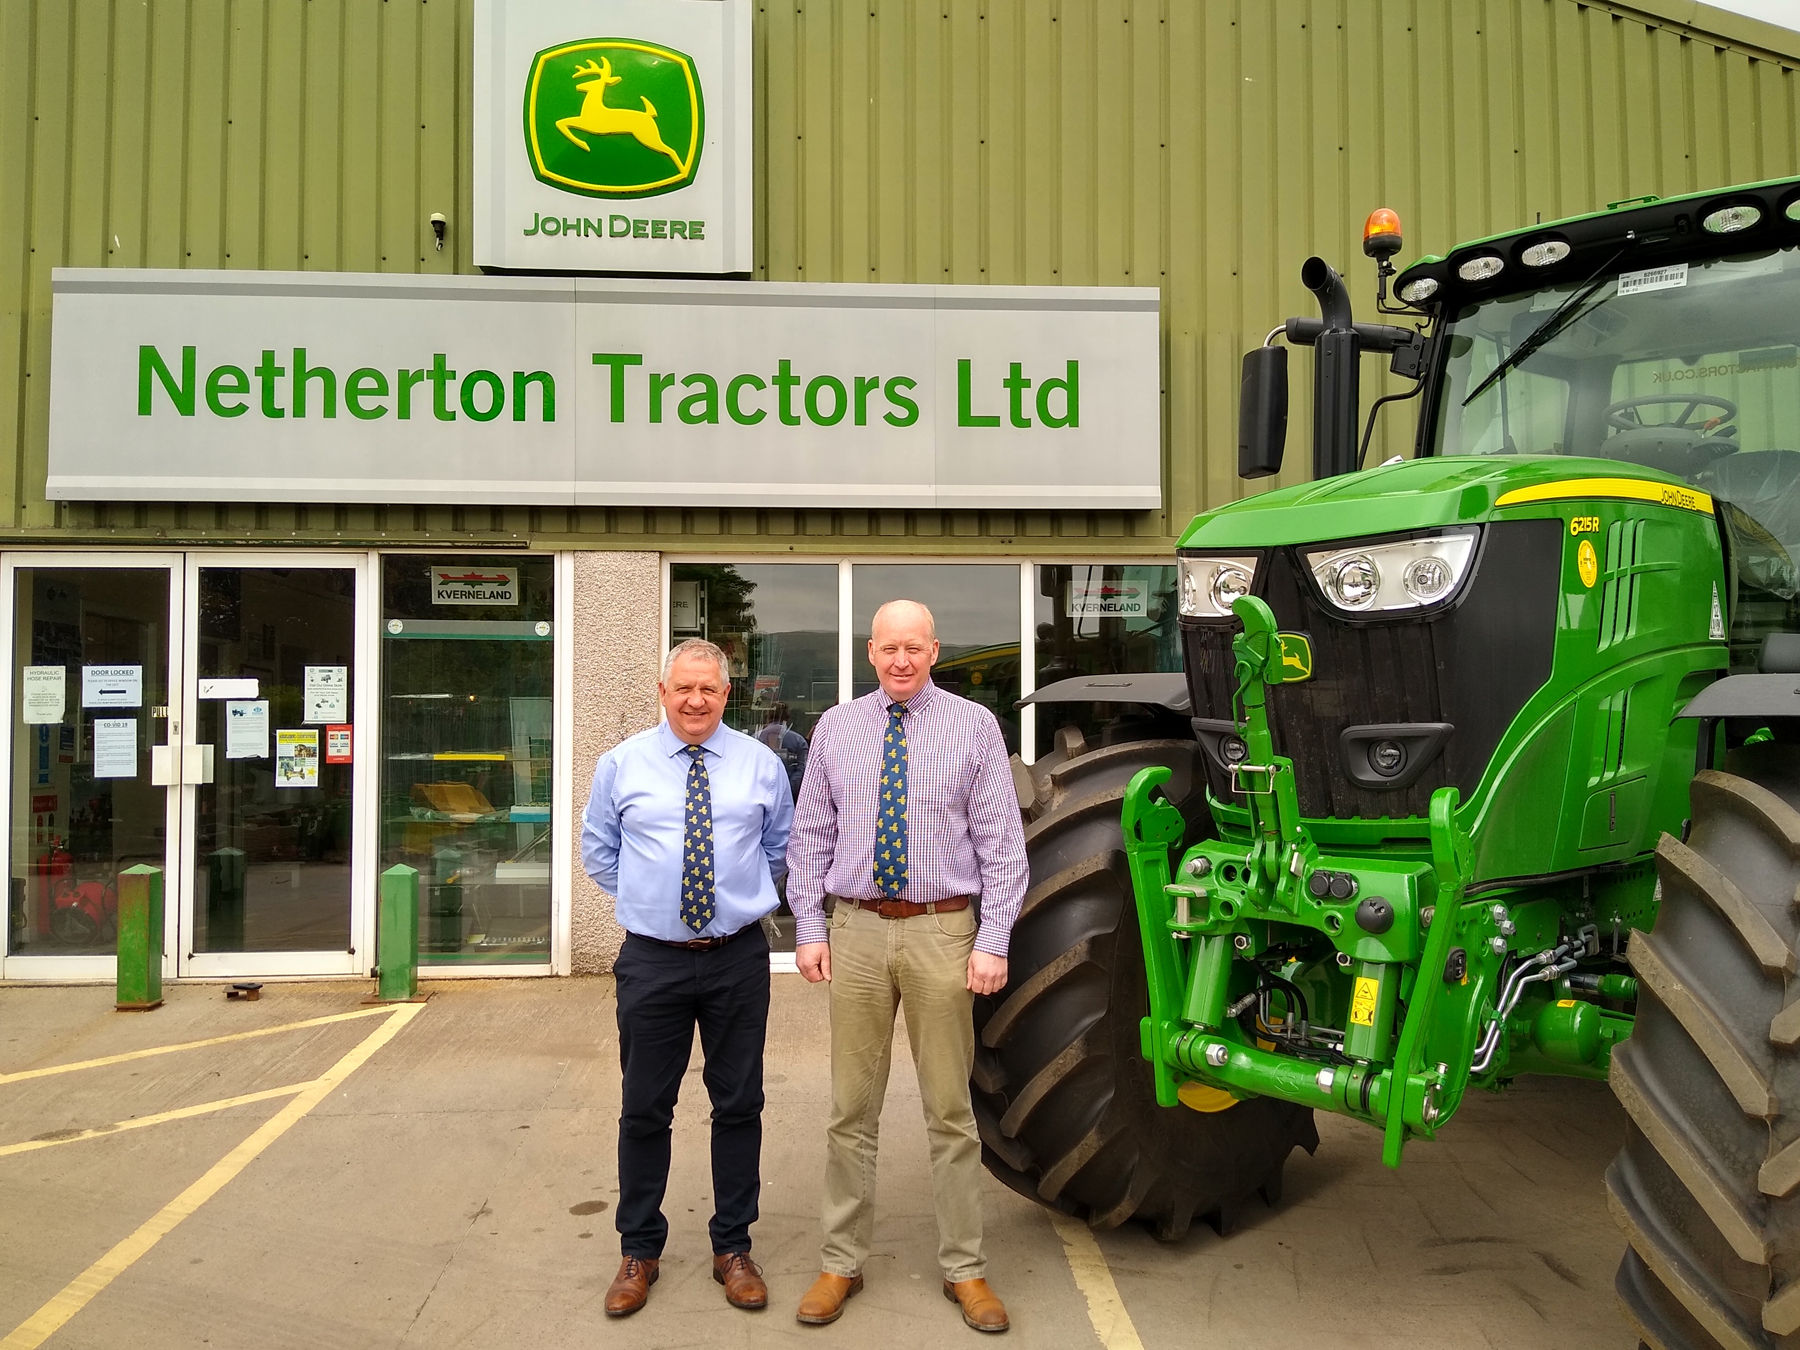 Managing director Harry Barclay, left, and general manager Garry Smith of John Deere dealership Netherton Tractors.